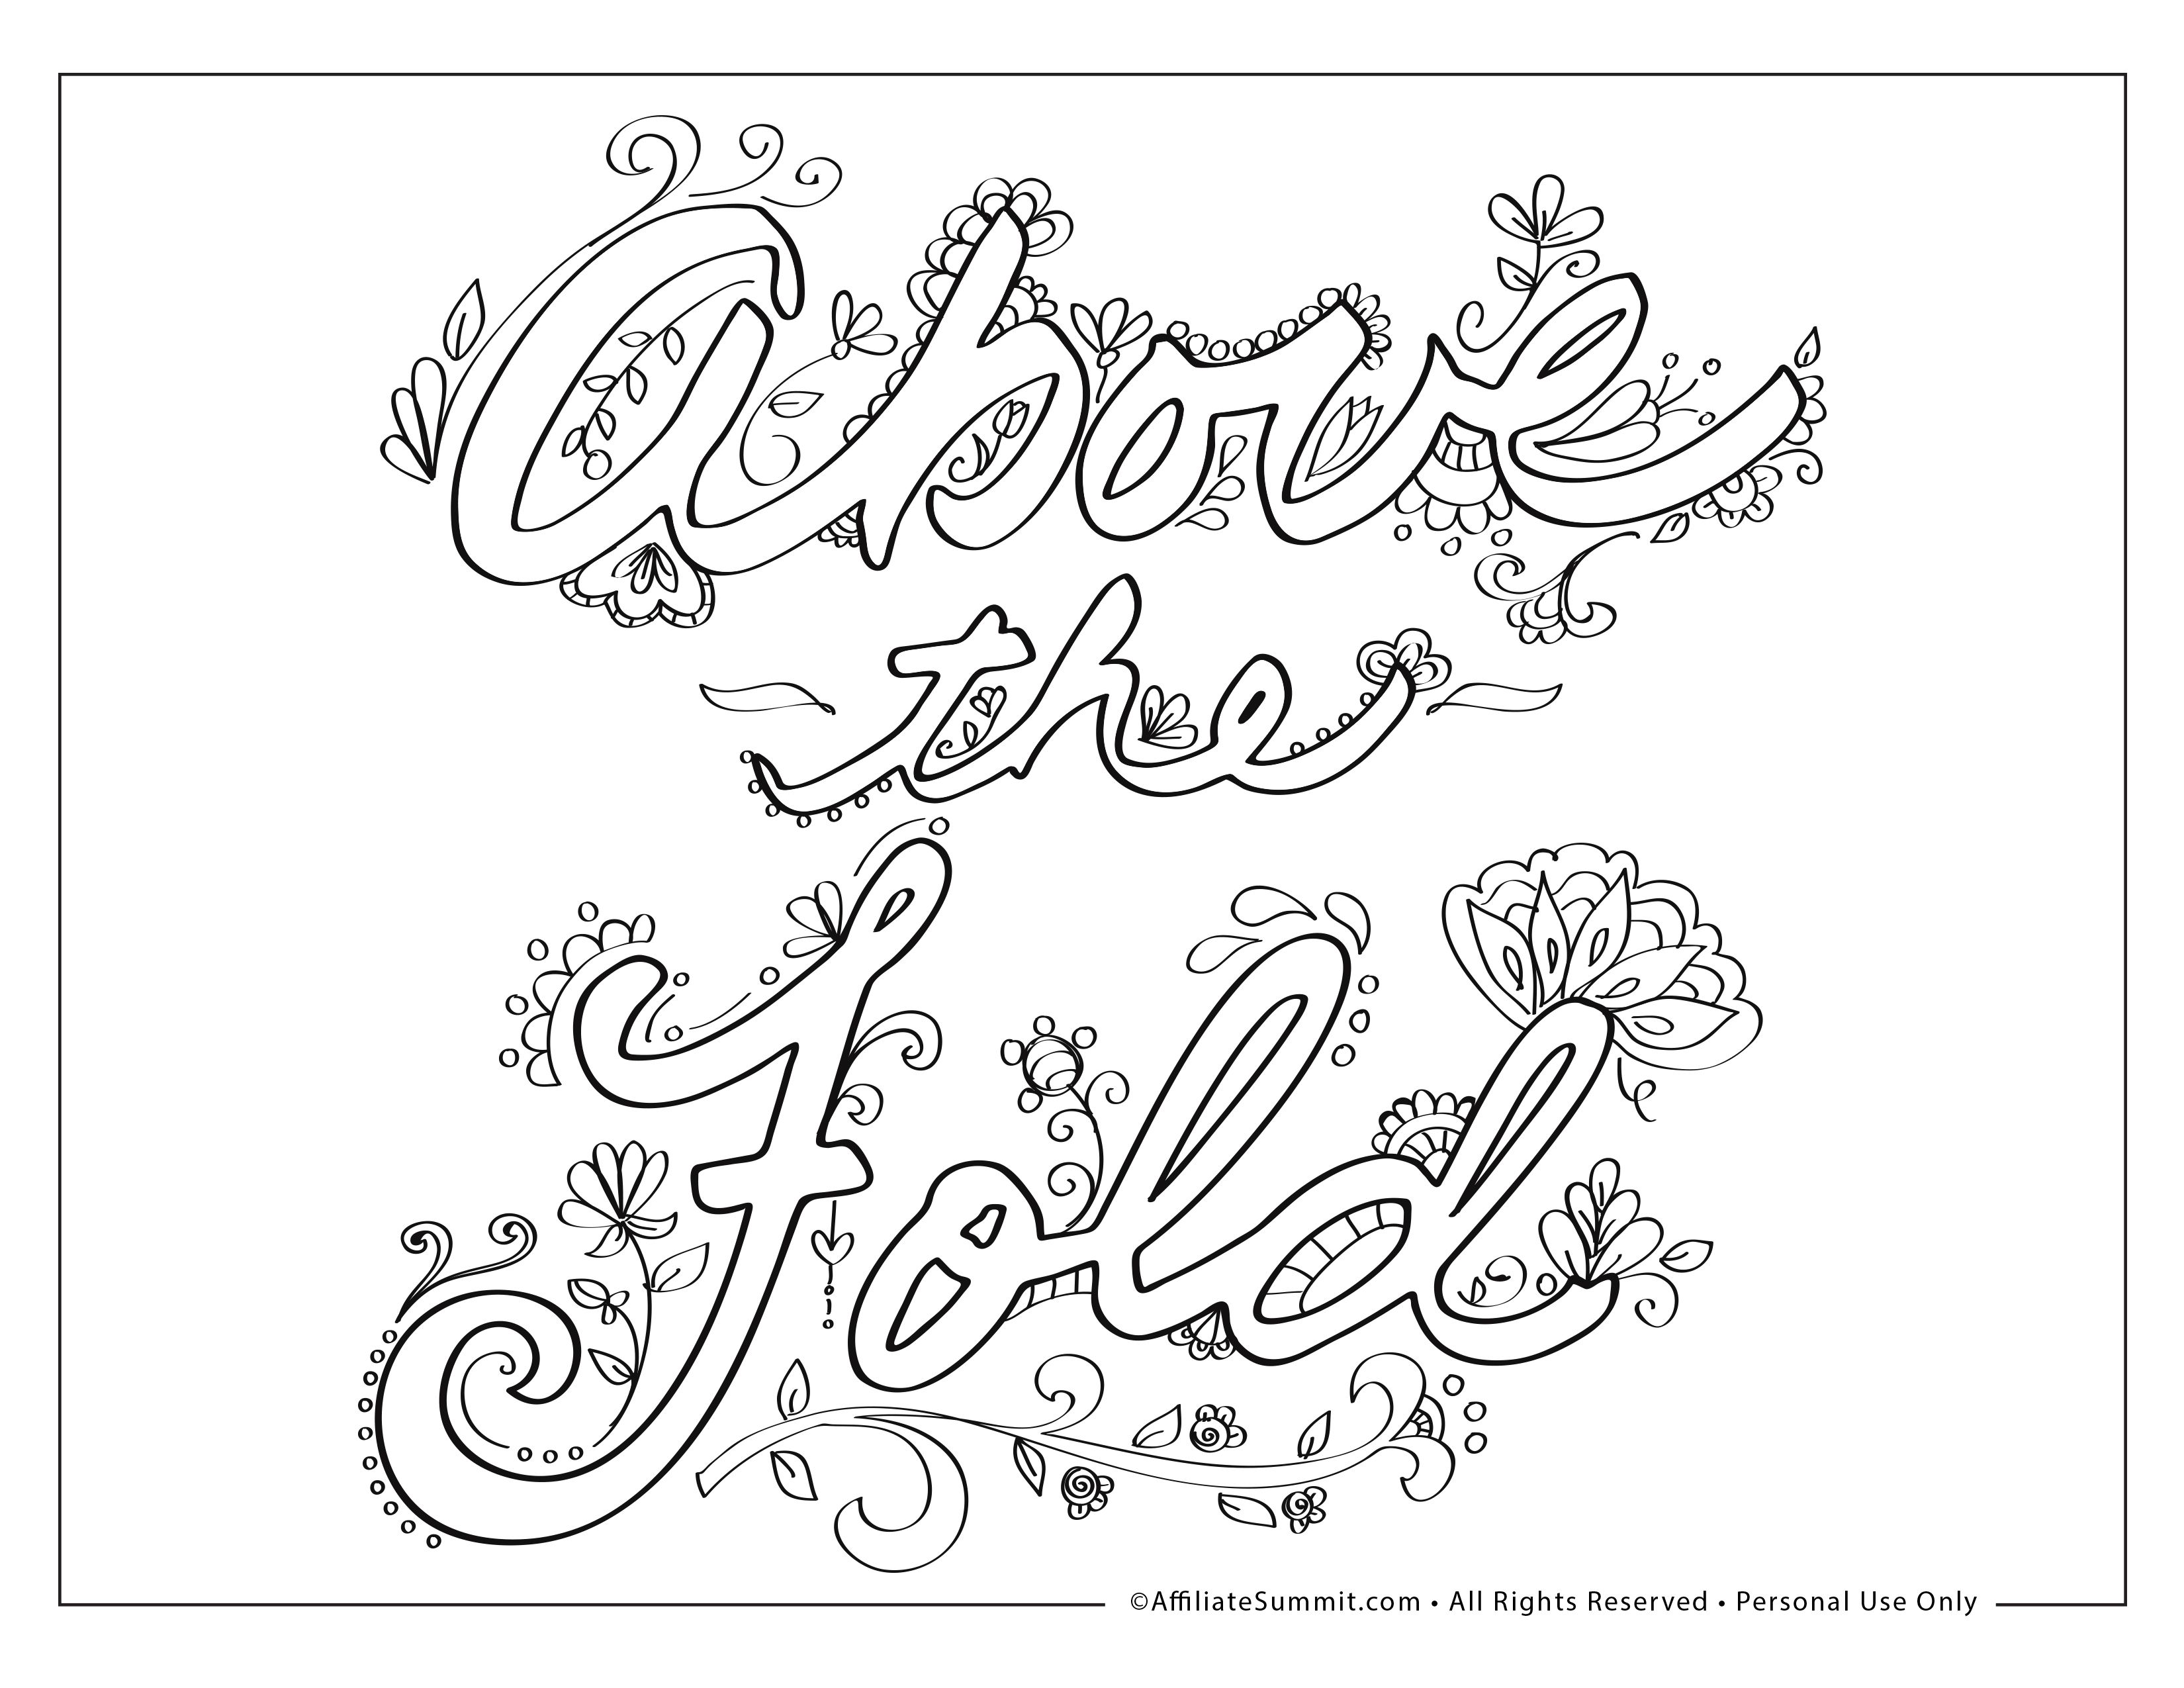 Affiliate Summit Has Created Coloring Pages That Are Free To Download And Print Maybe It S When You Need Something Else To Do Whi Coloring Books Color Summit